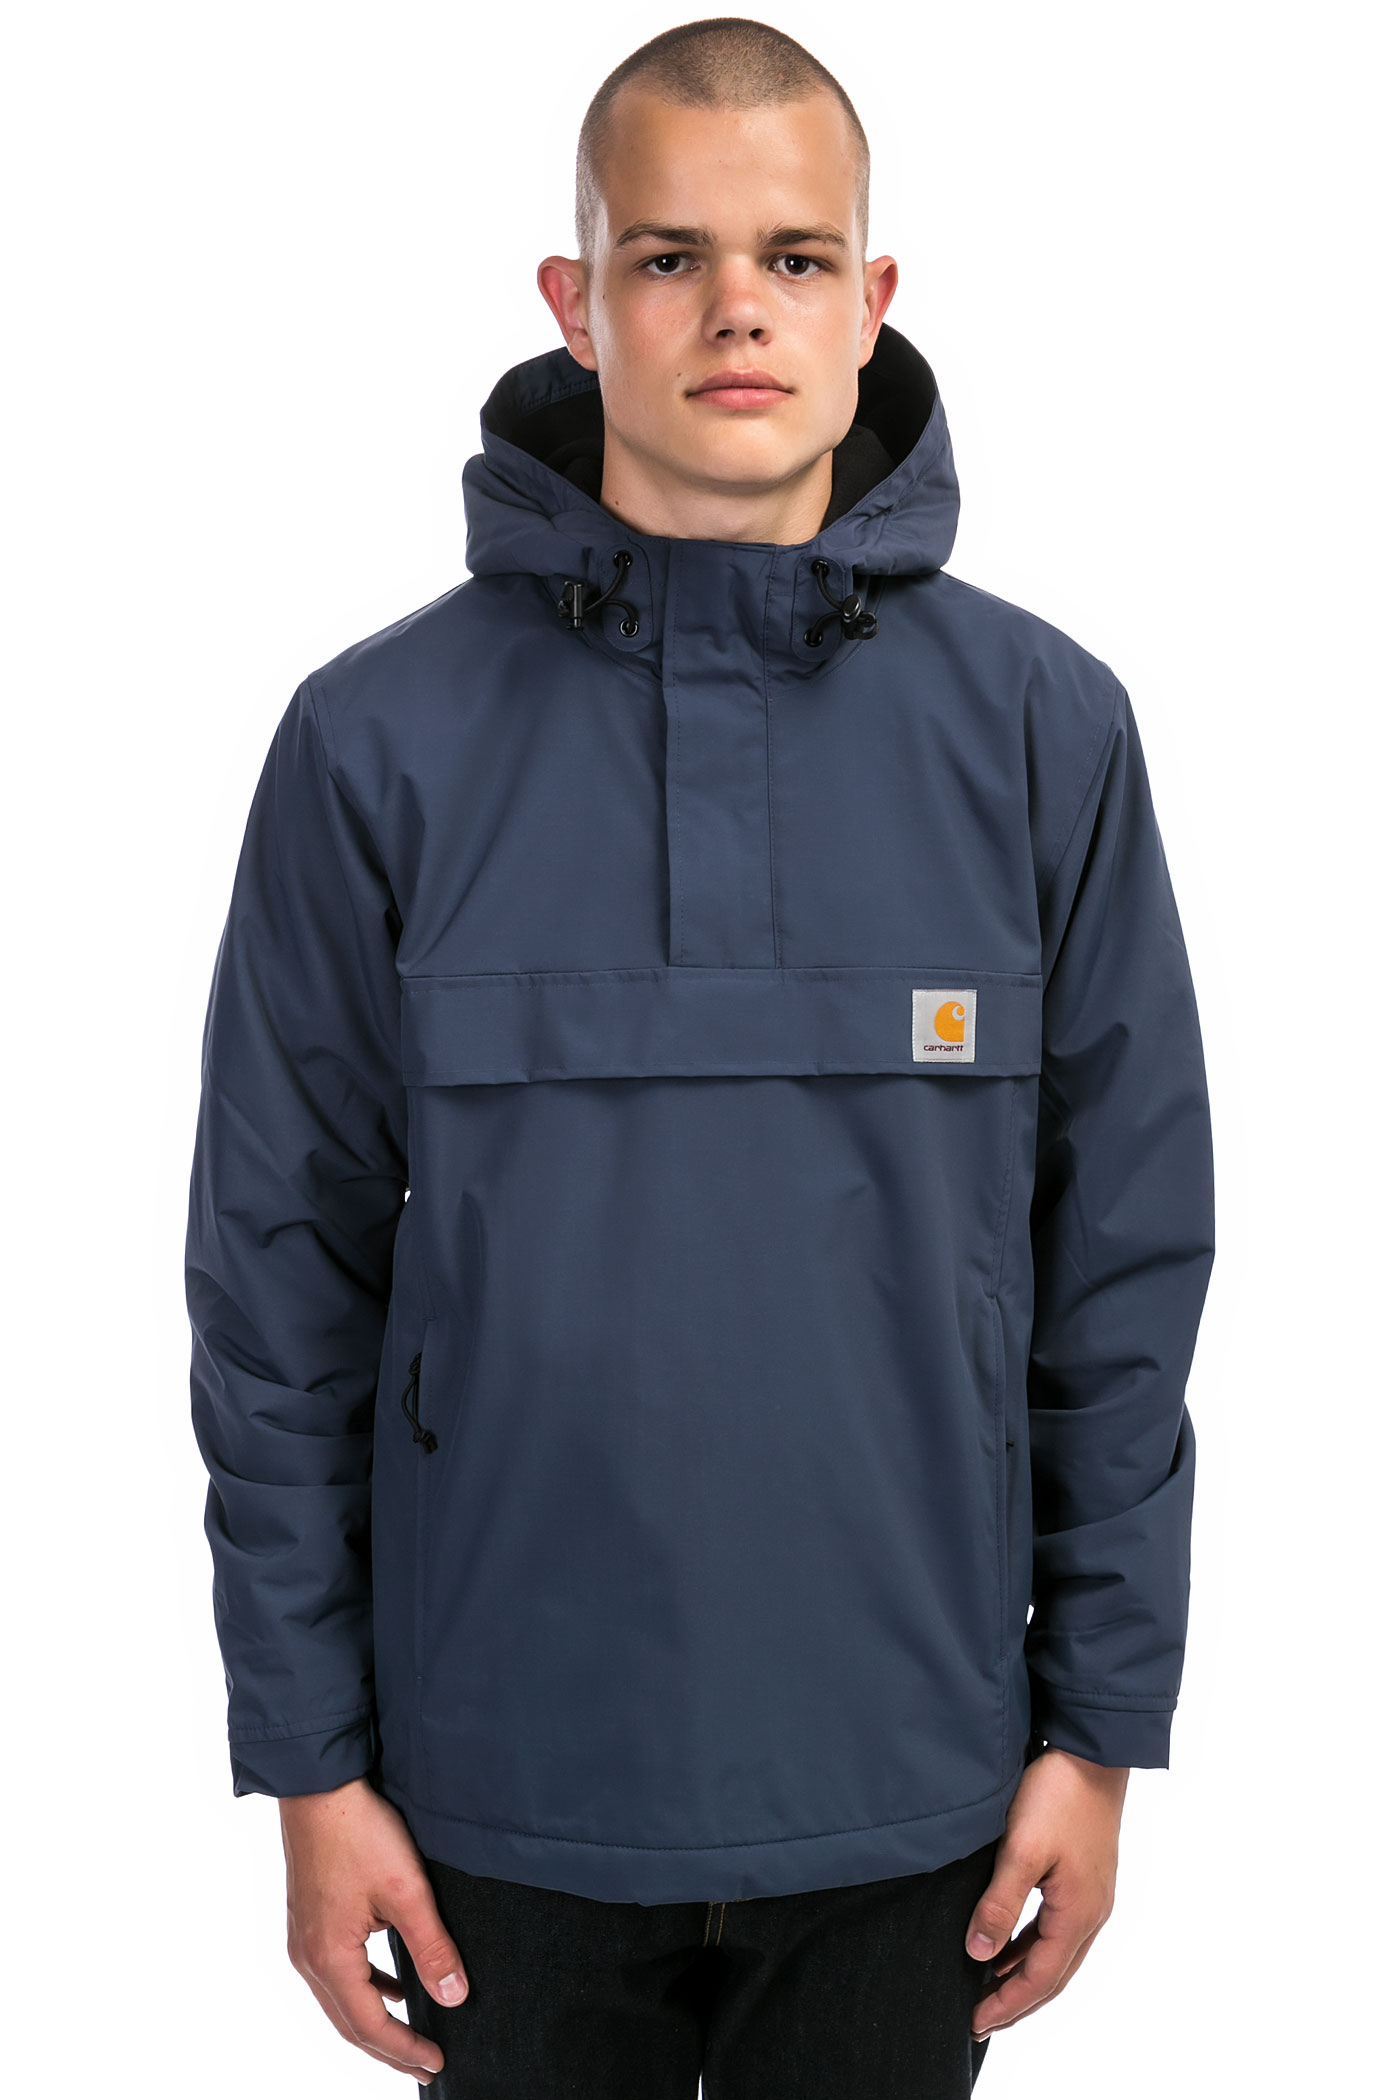 91a6c1cf62c6a Where to buy a carhartt jacket : Recent Coupons